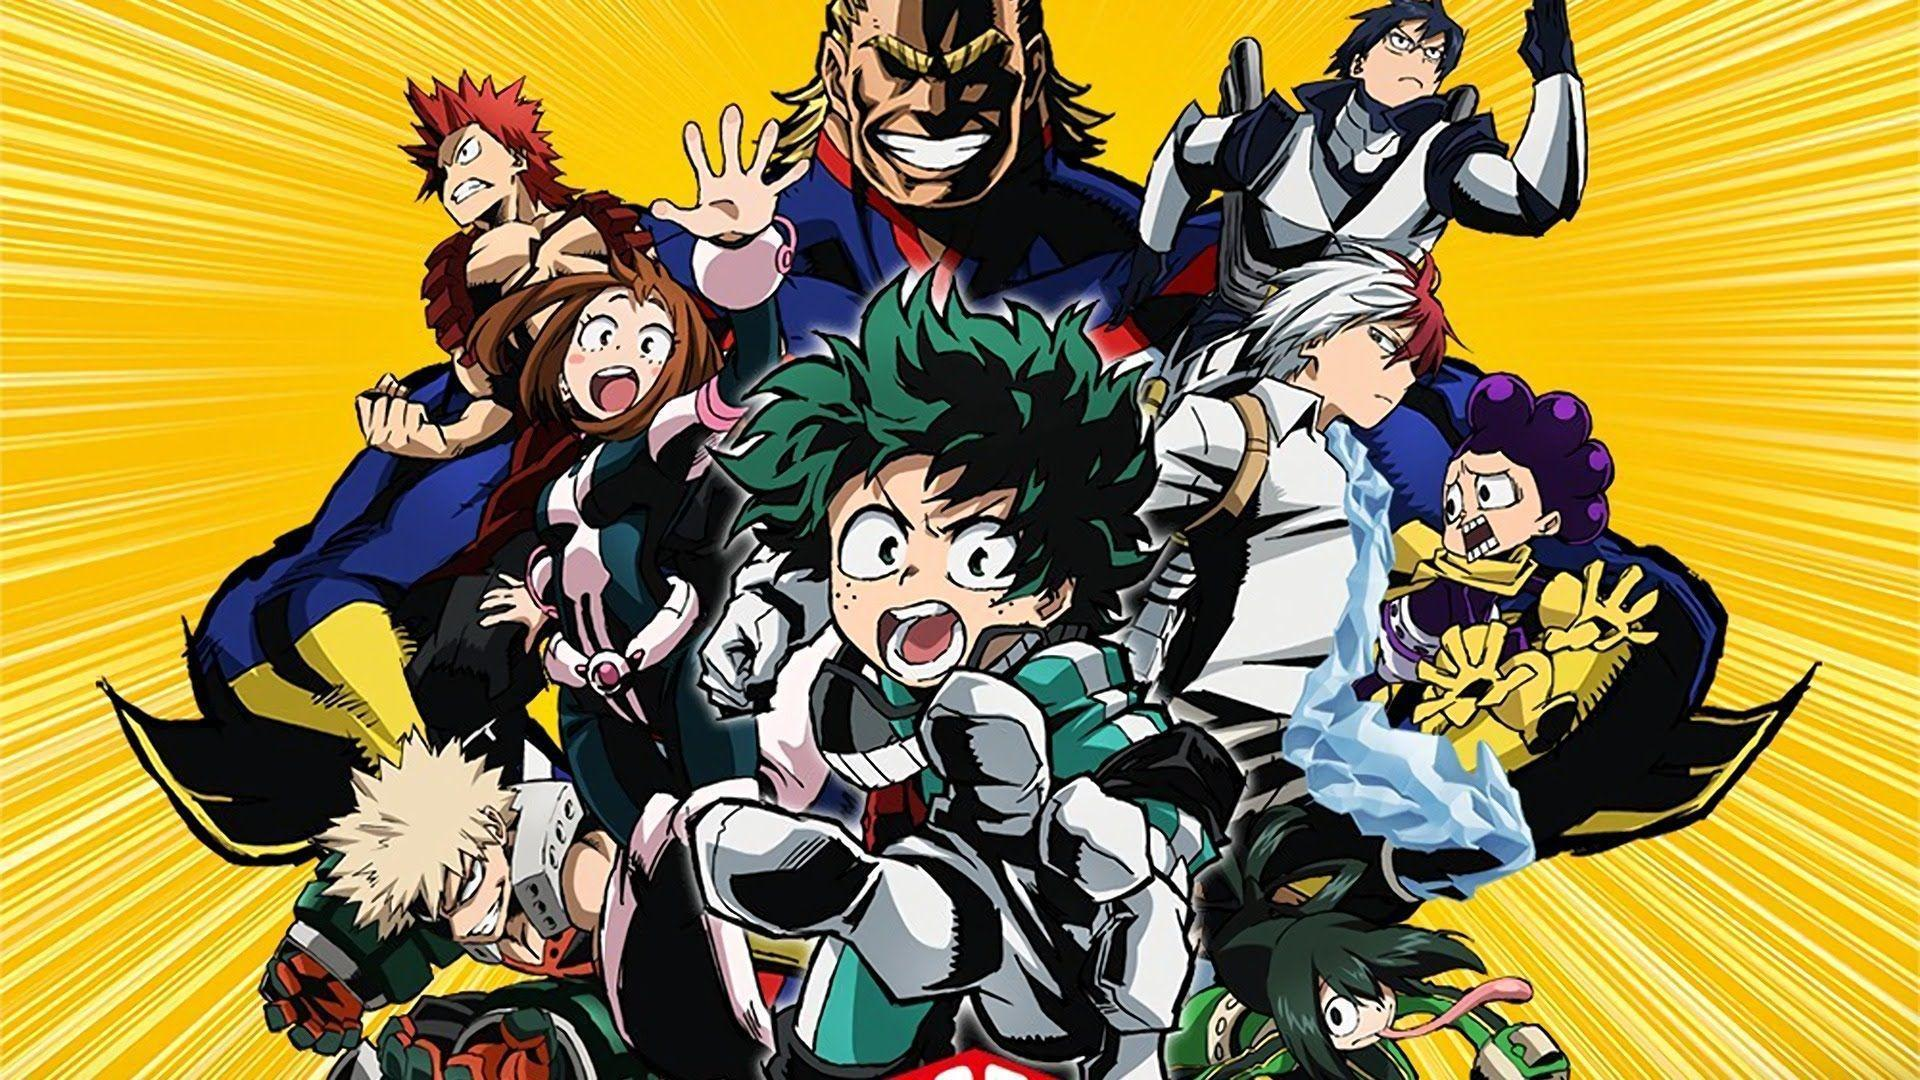 Become a hero with our 2807 my hero academia hd wallpapers and background images! Boku No Hero Academia Wallpapers - Wallpaper Cave